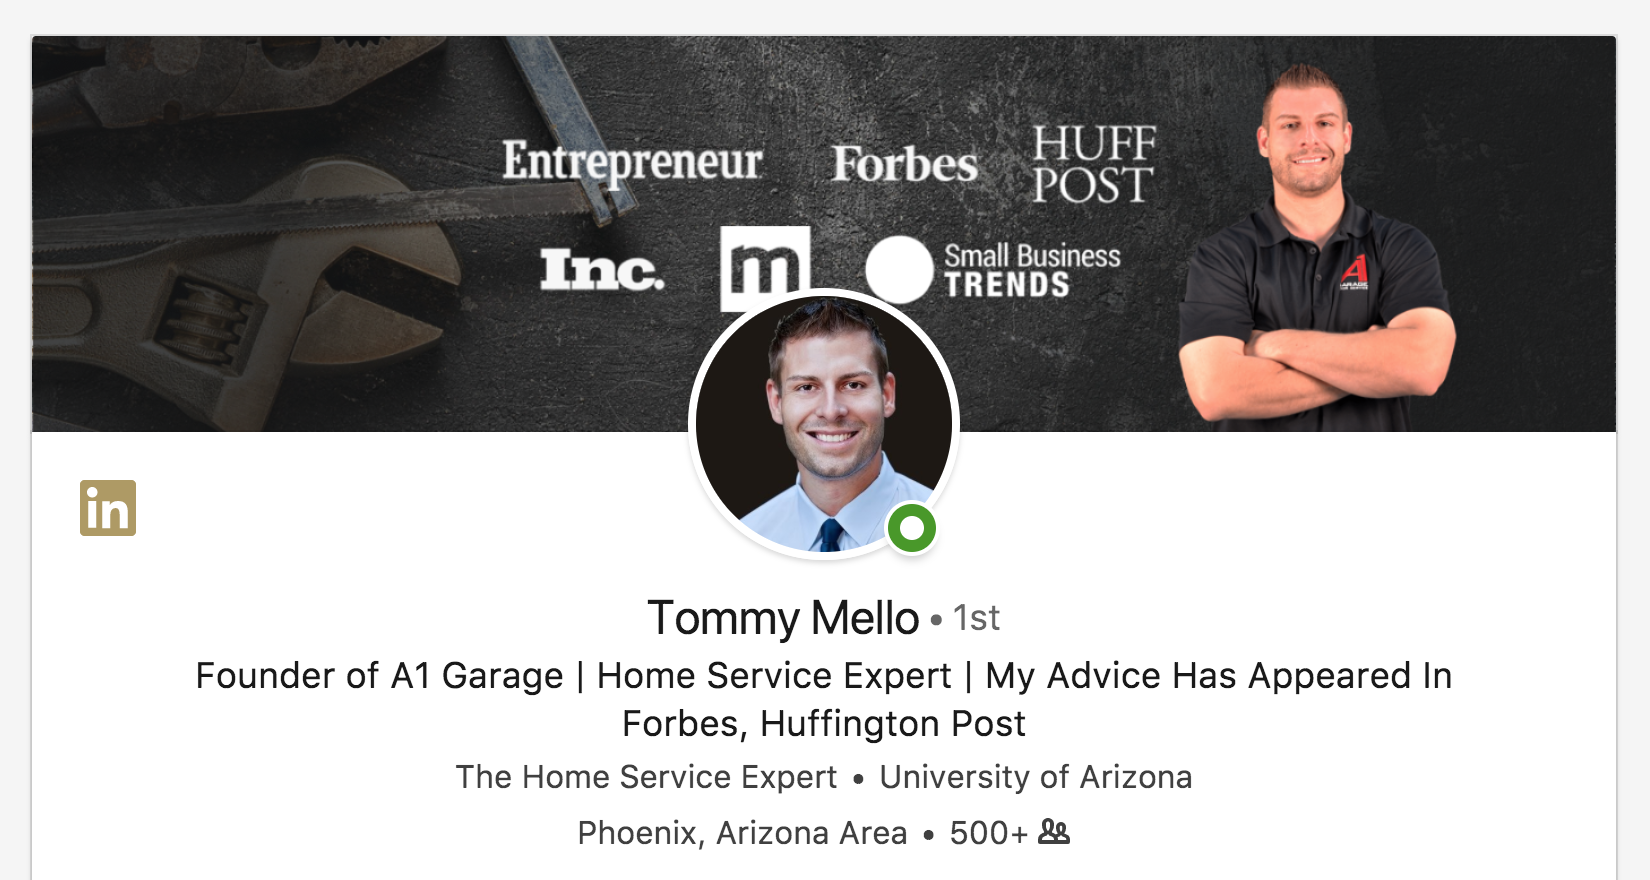 ttommy_mello linkedin profile